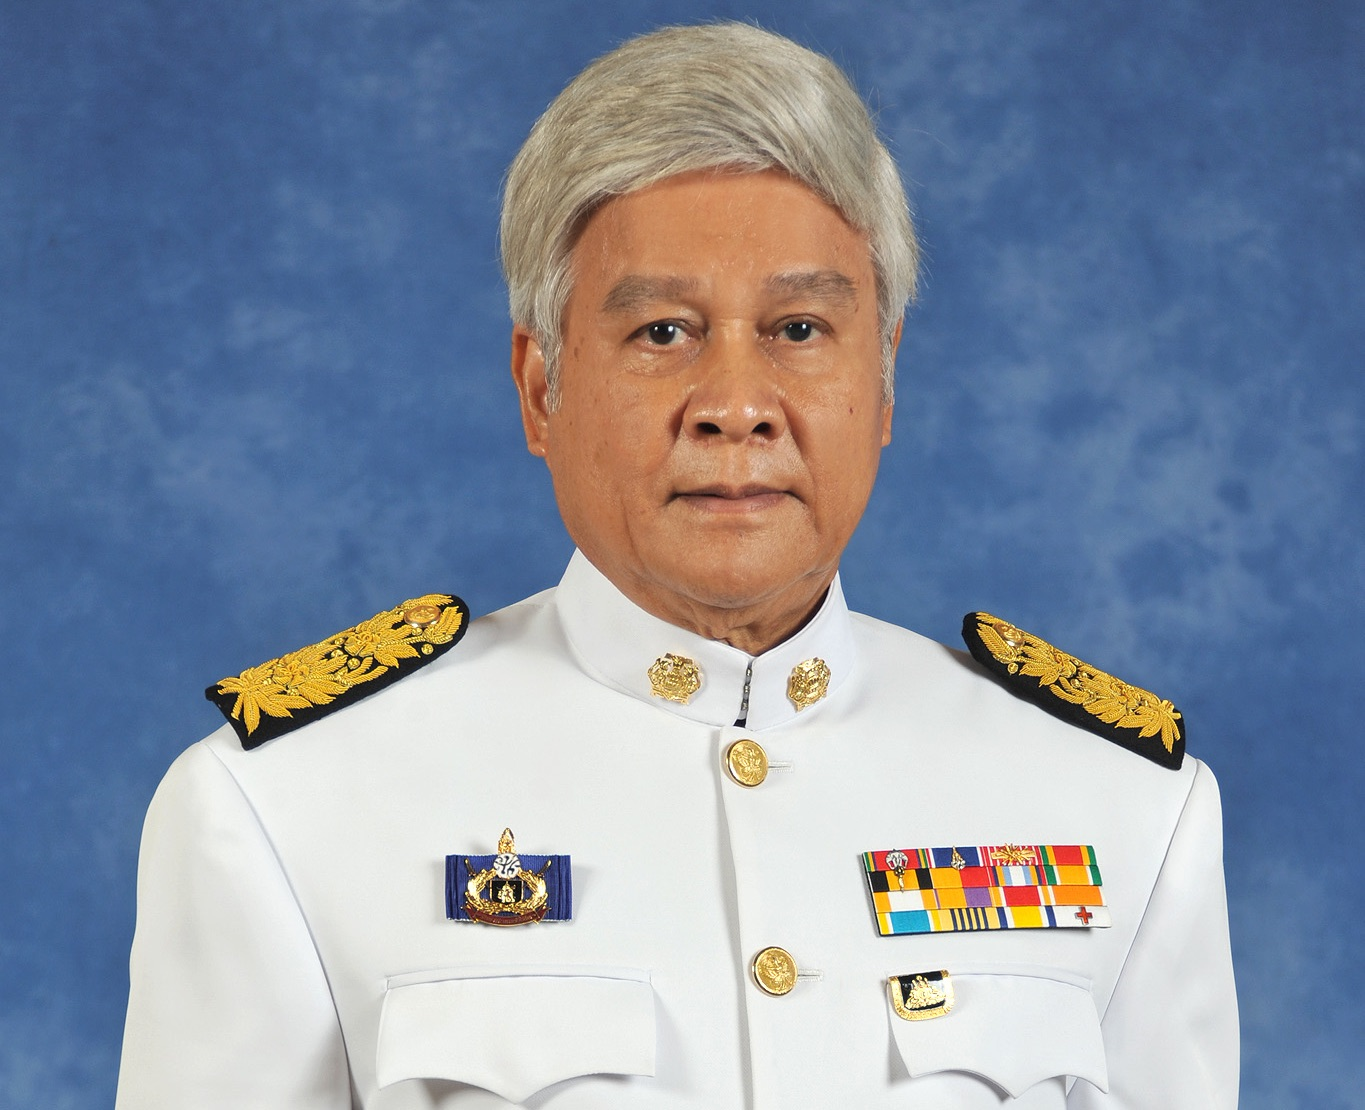 Deputy Prime Minister of Thailand Yongyuth Wichaidit steps down